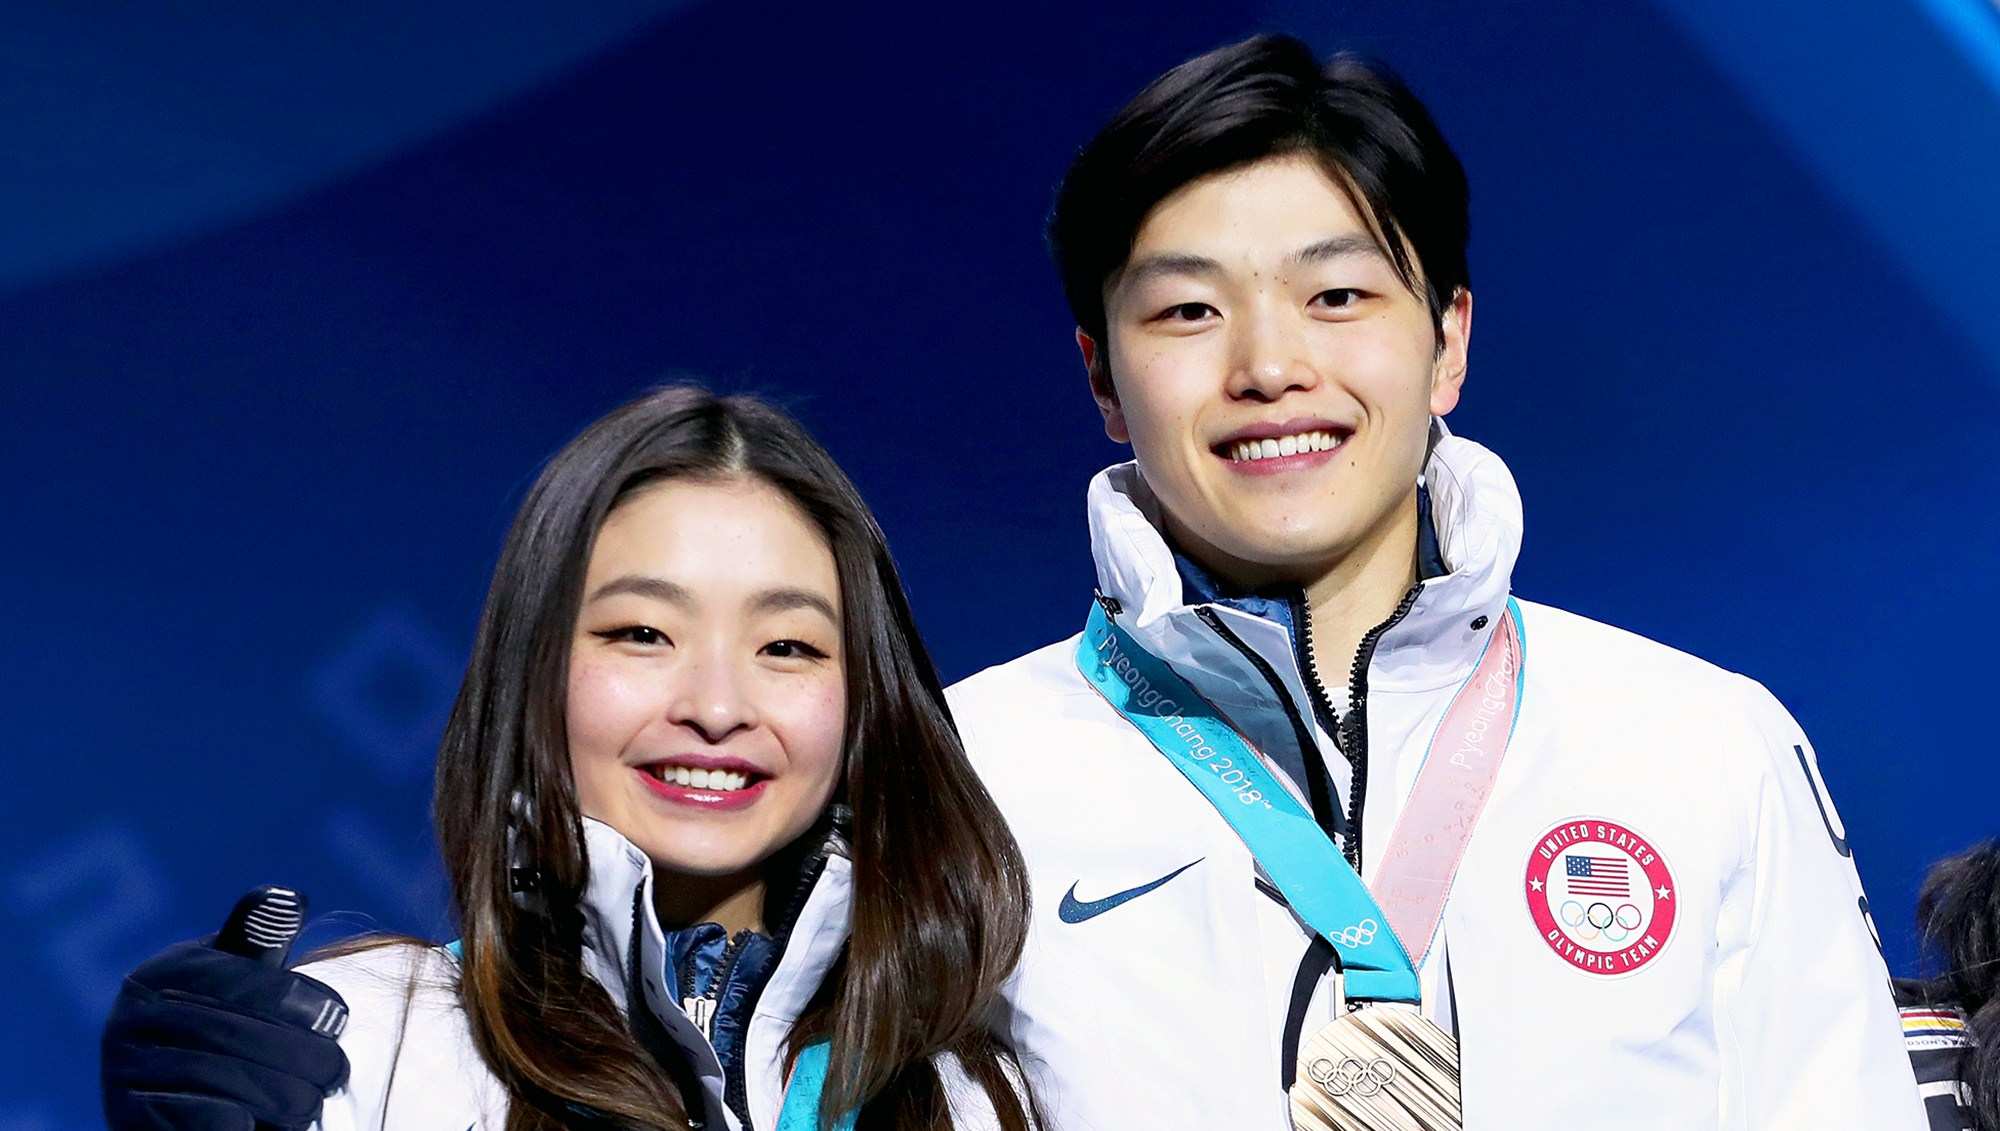 Bronze medalists Maia Shibutani and Alex Shibutani of the United States celebrate during the medal ceremony for Figure Skating - Ice Dance Free Dance on day 11 of the PyeongChang 2018 Winter Olympic Games on February 20, 2018 in Pyeongchang-gun, South Korea.